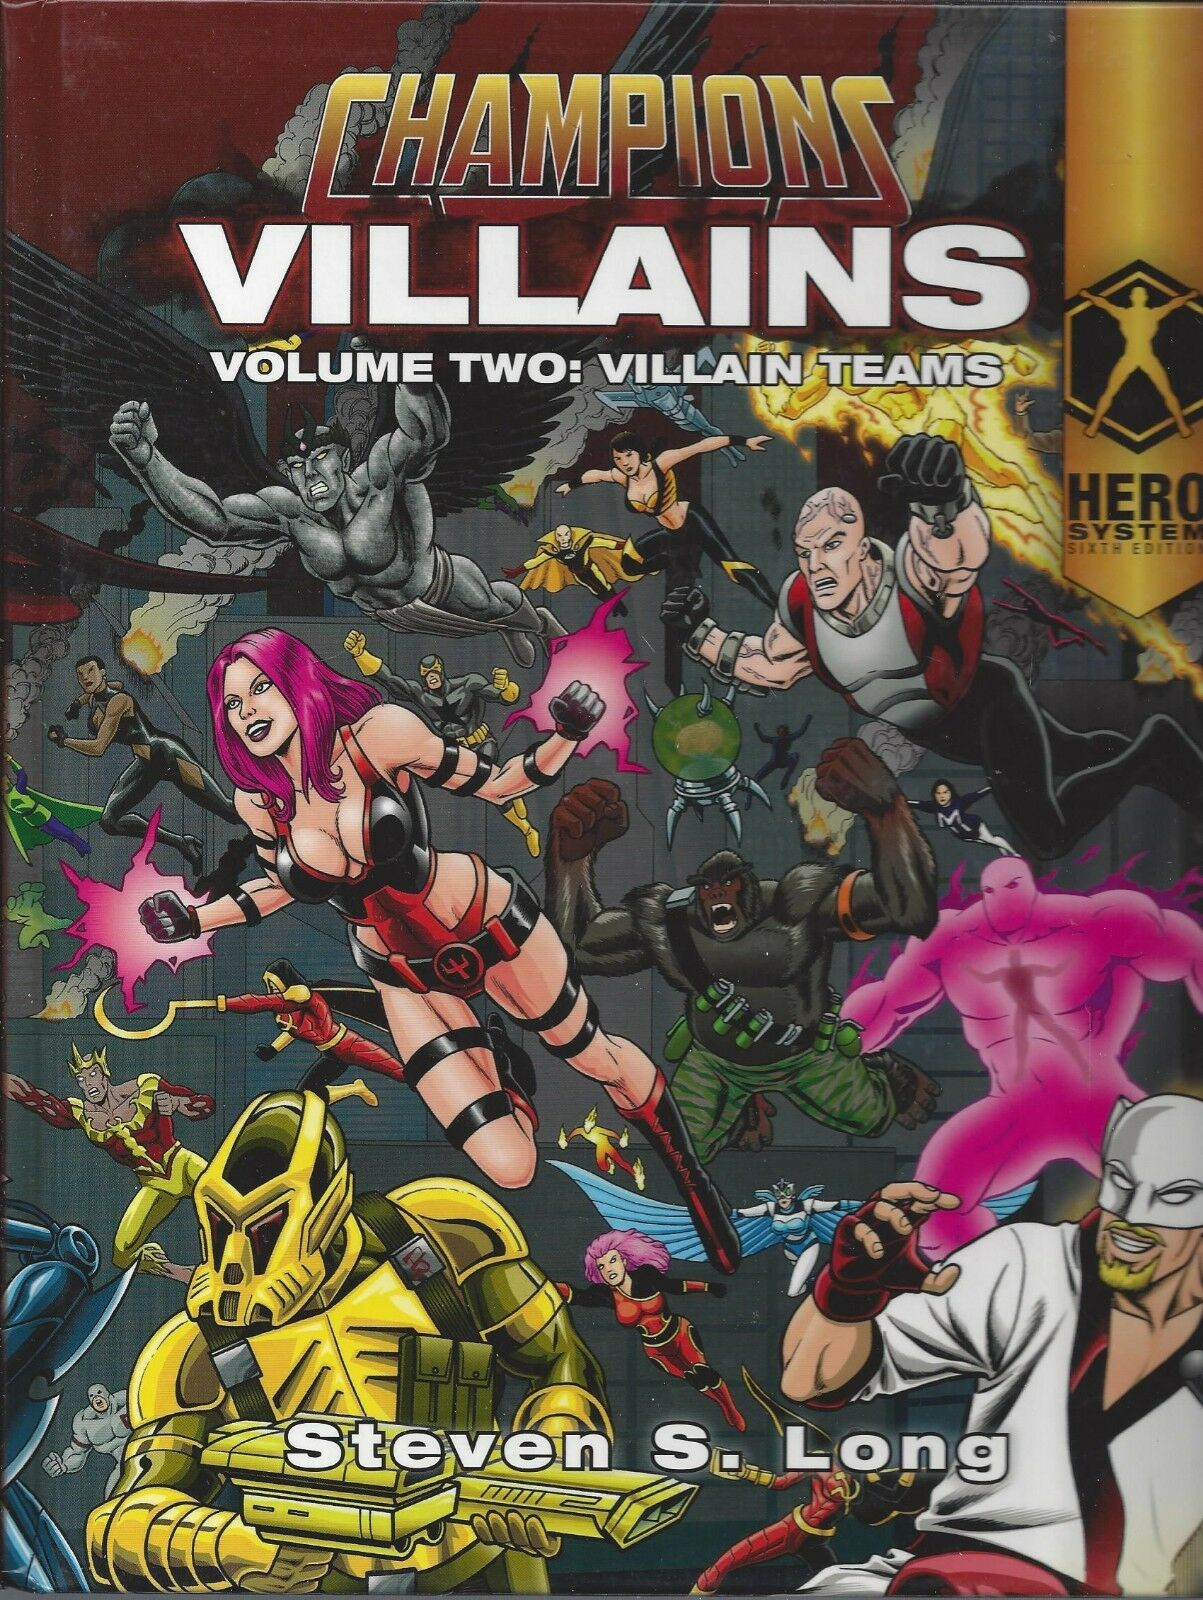 Hero System 6 6 6 th Edition RPG Champions Villains Vol 2 HC NEW  OOP  DOJHERO 1104 19b951